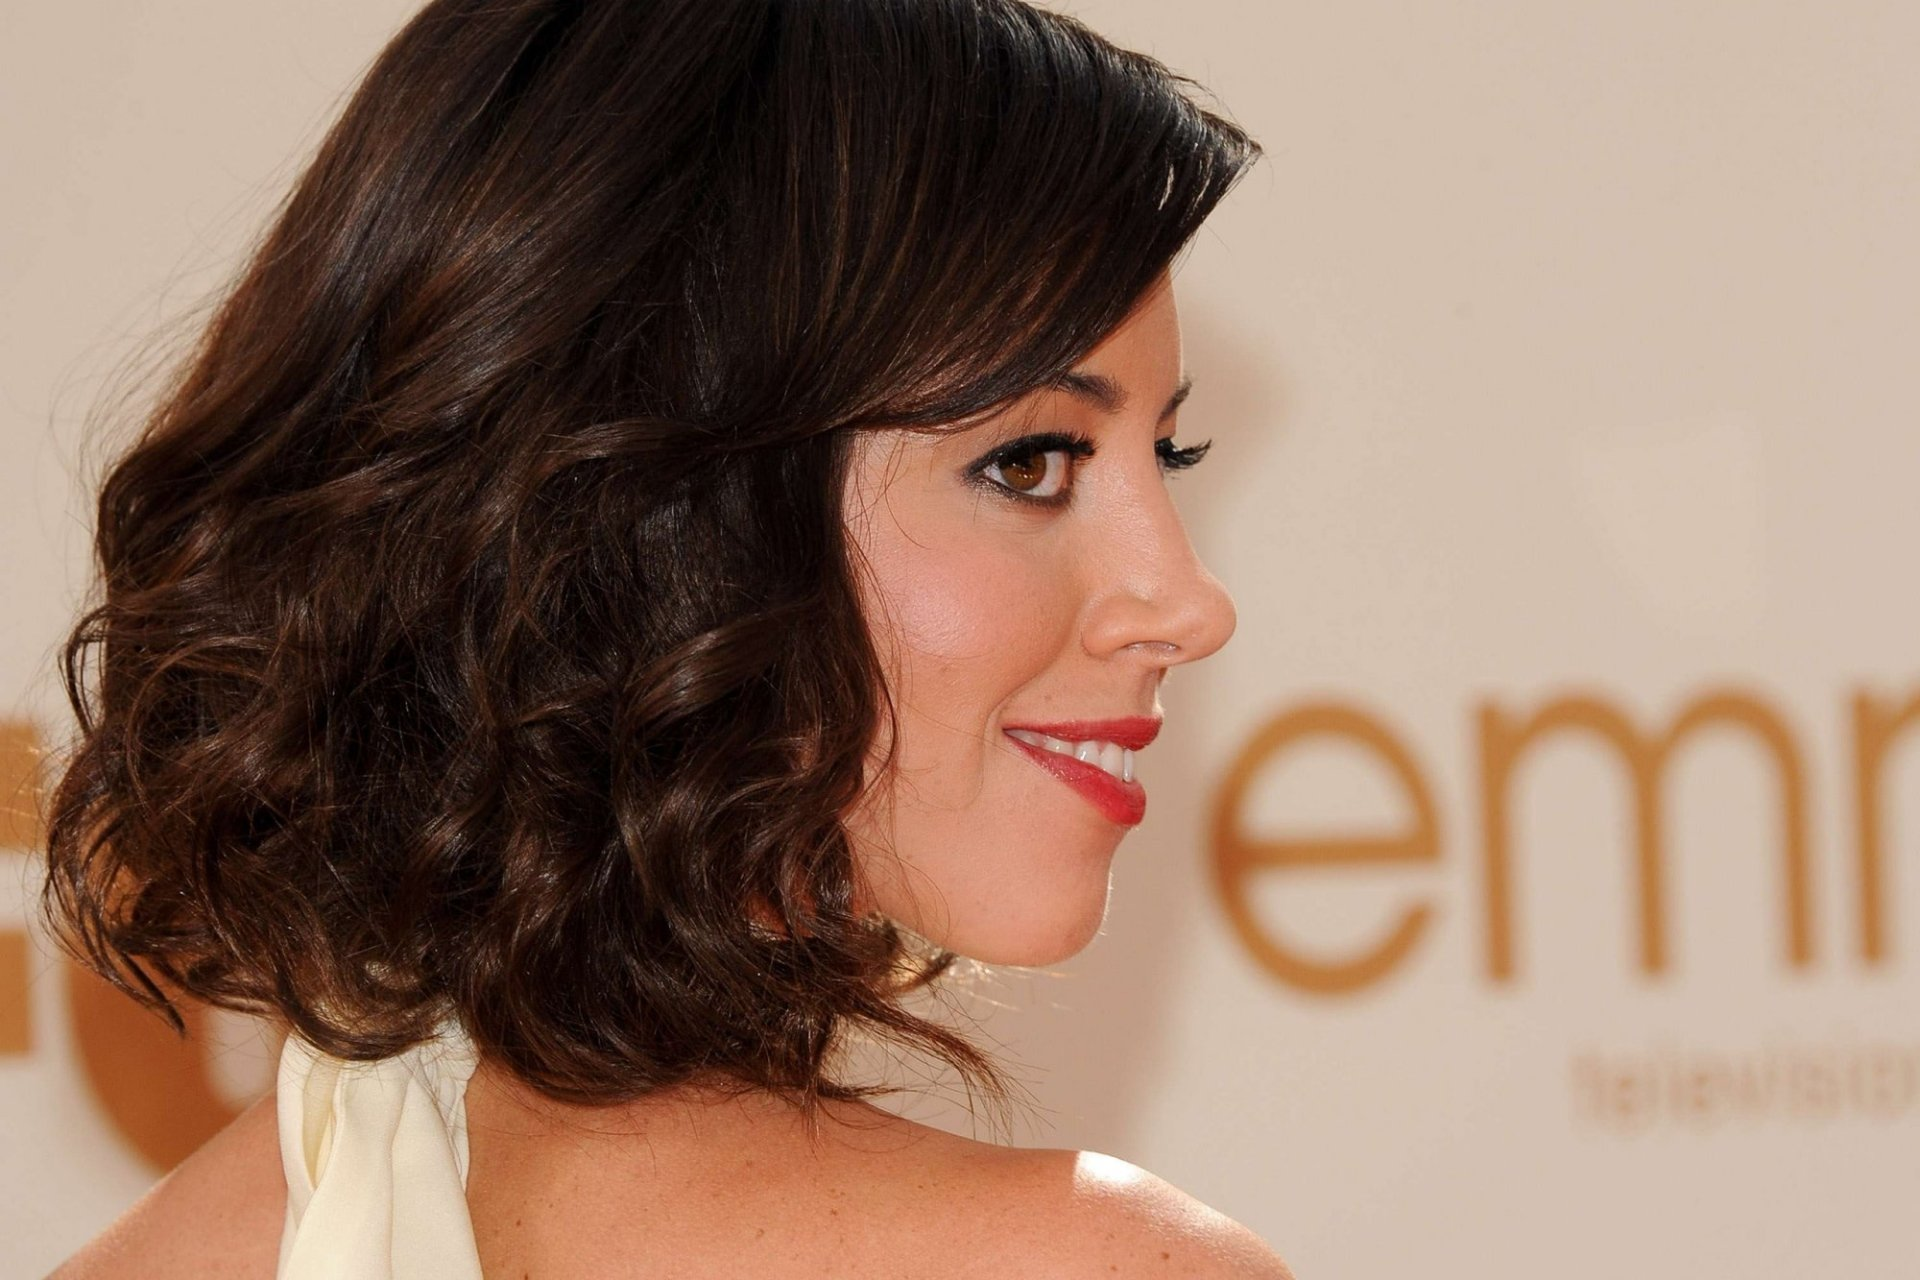 Celebrity - Aubrey Plaza  Actress American Face Brunette Smile Lipstick Brown Eyes Wallpaper